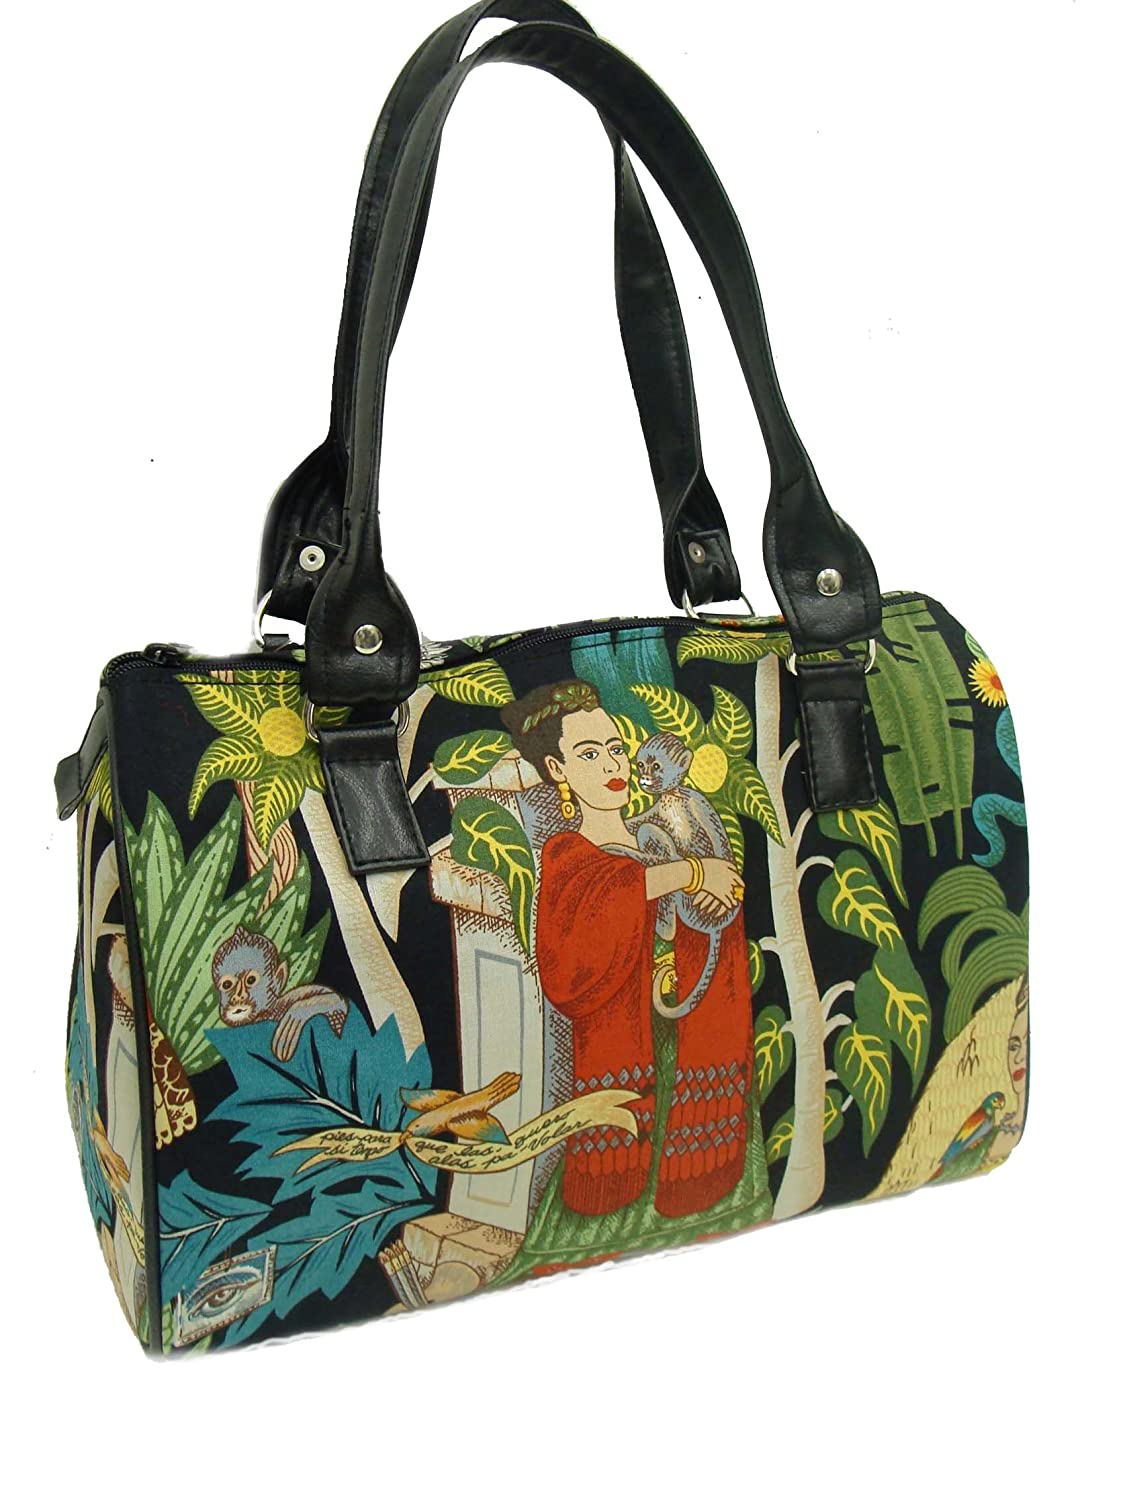 US Handmade Fashion Frida With Monkey Latino Artist Latino Cultural Doctor Bag Satchel Style Handbag Purse Cotton fabric, DRB1511-1